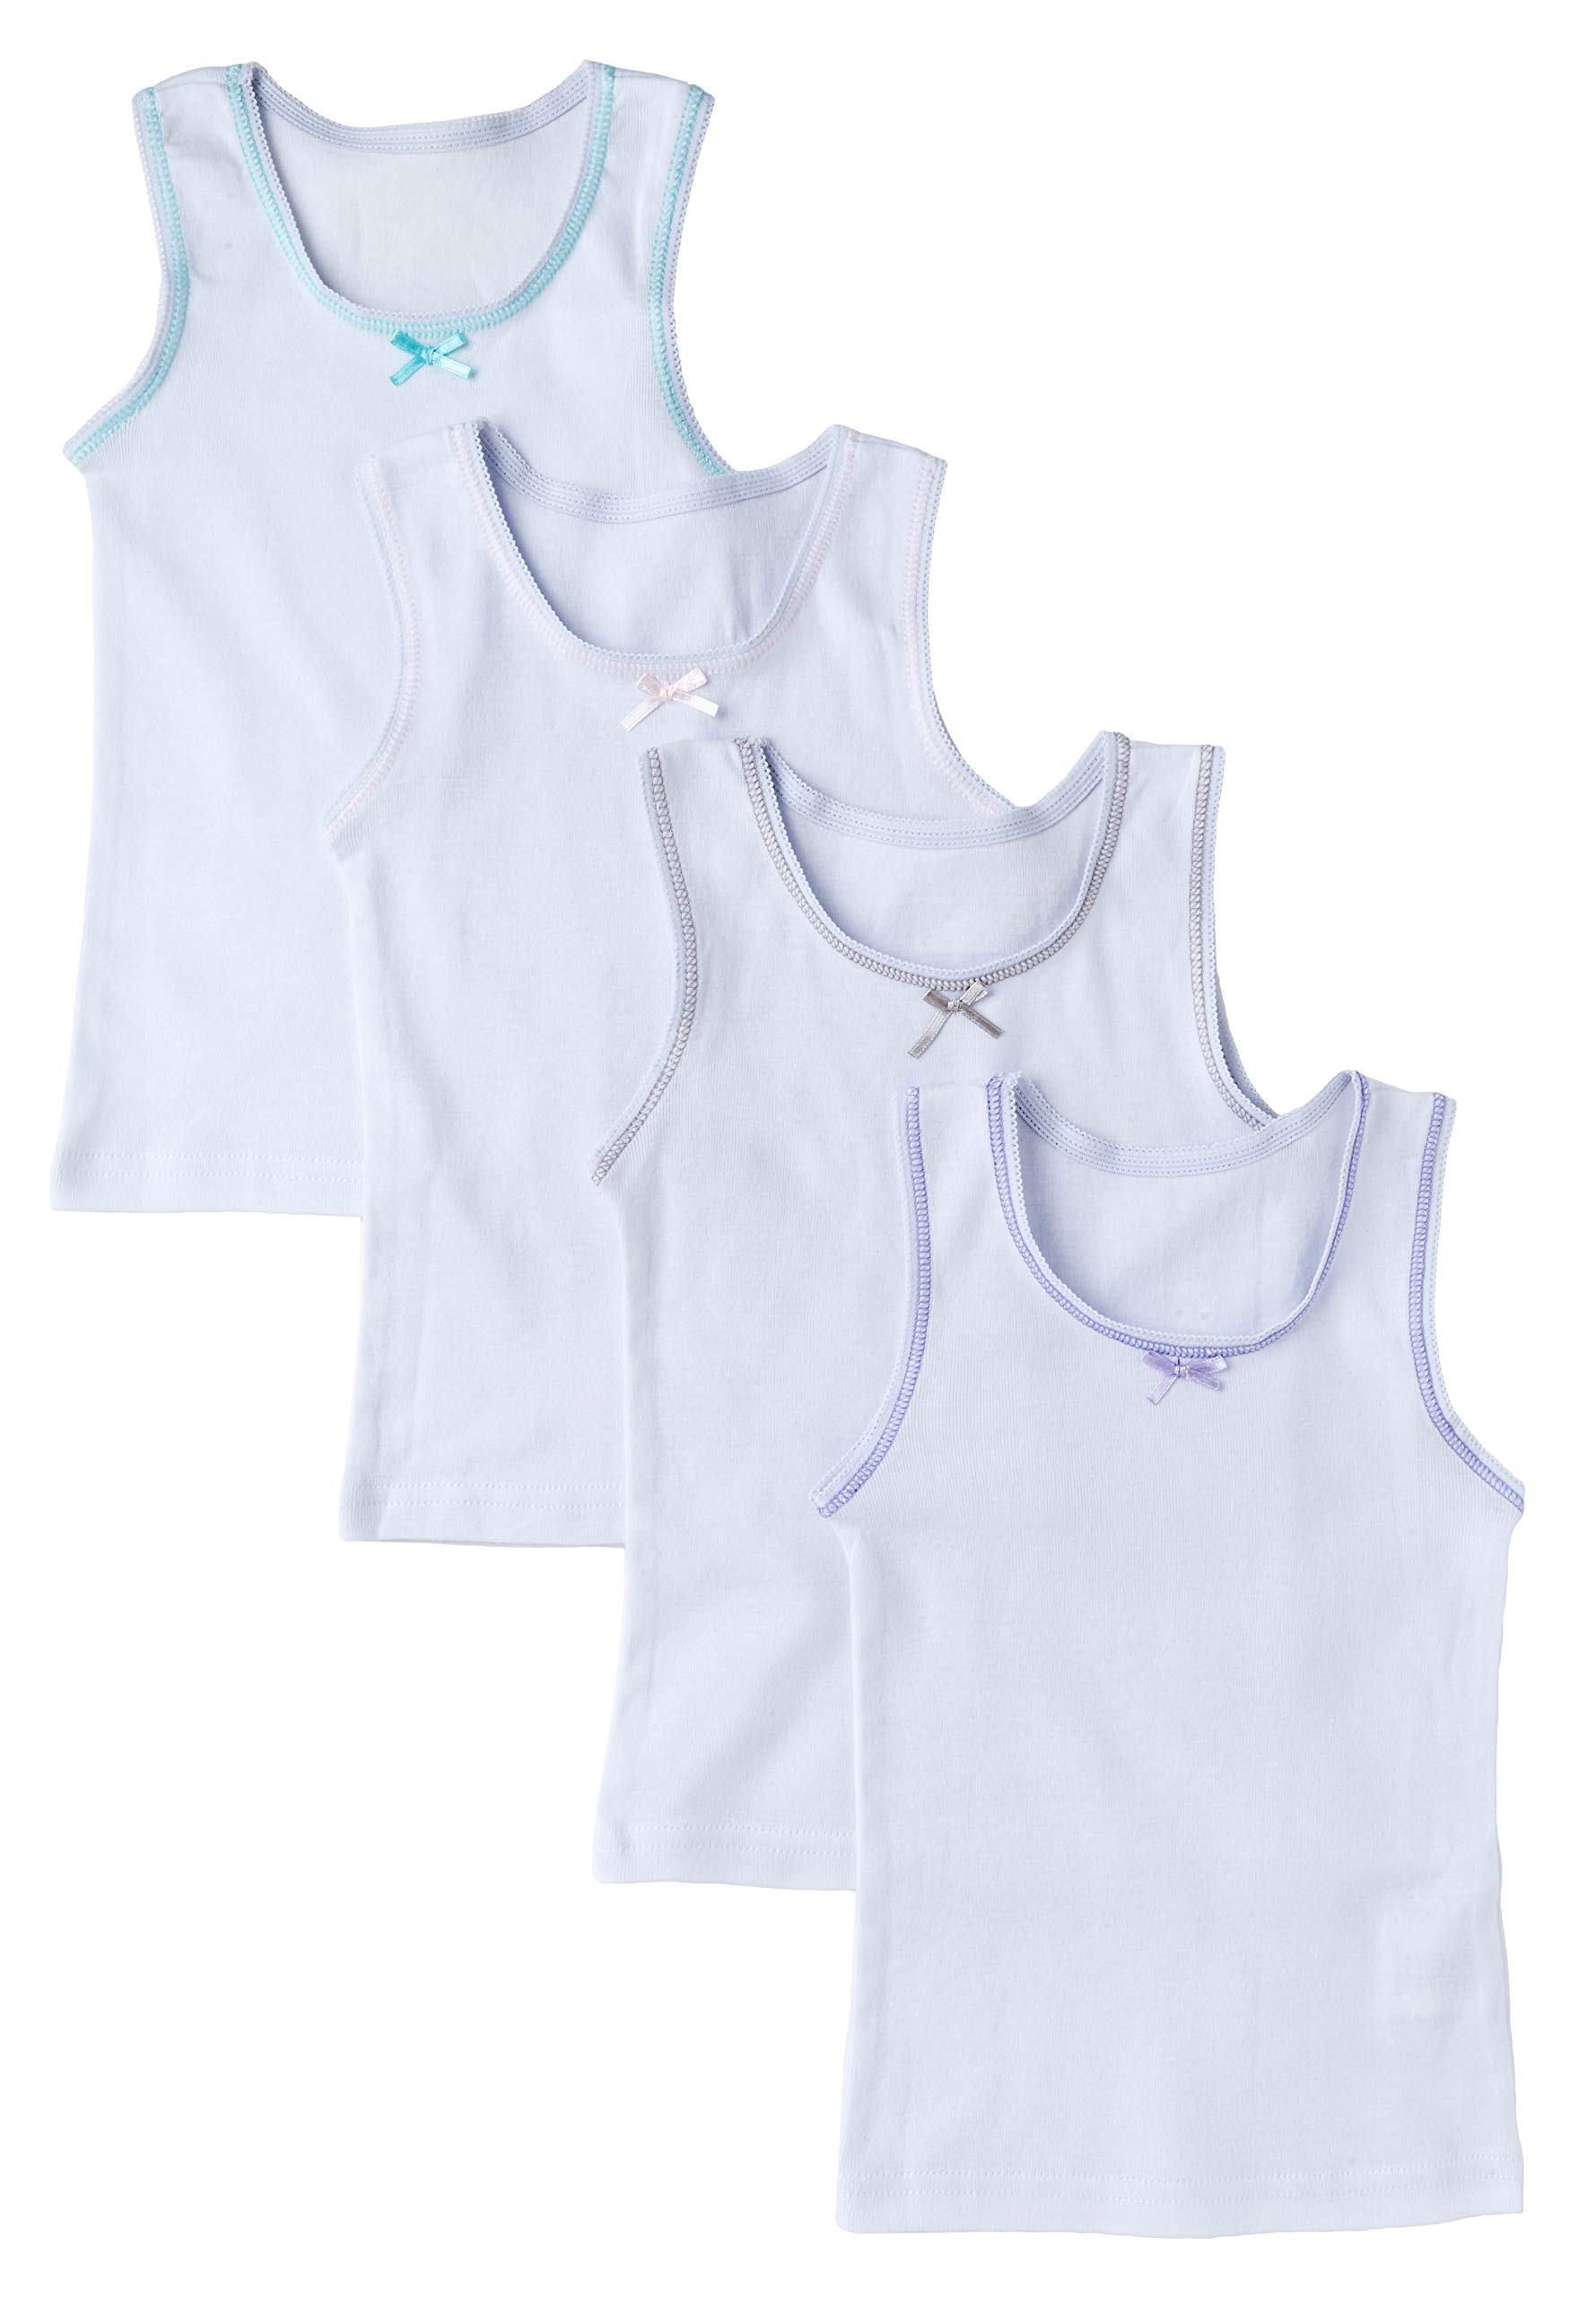 Sportoli Girls Ultra Soft 100% Cotton White Tagless Tank Top Undershirts - Size 6/7